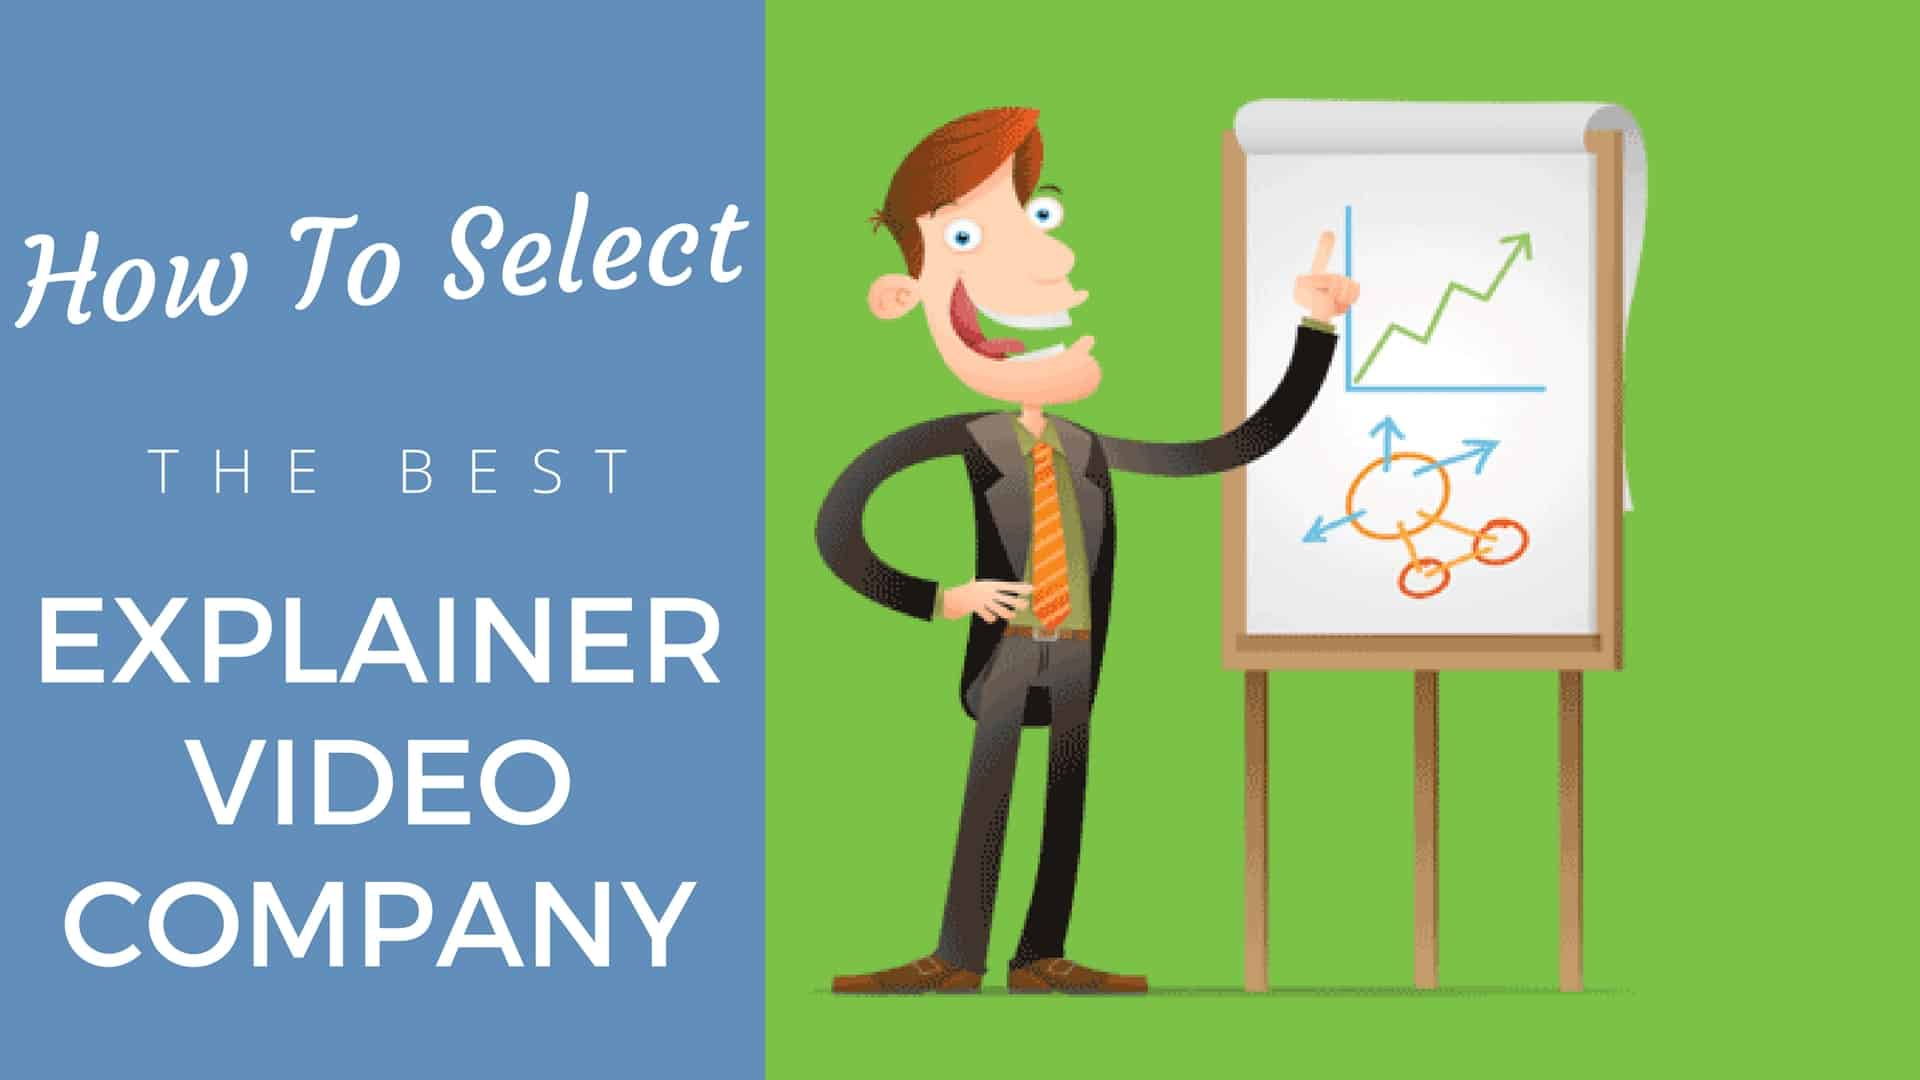 Learn How To Select The Best Explainer Video Production Company To Represent Your Brand